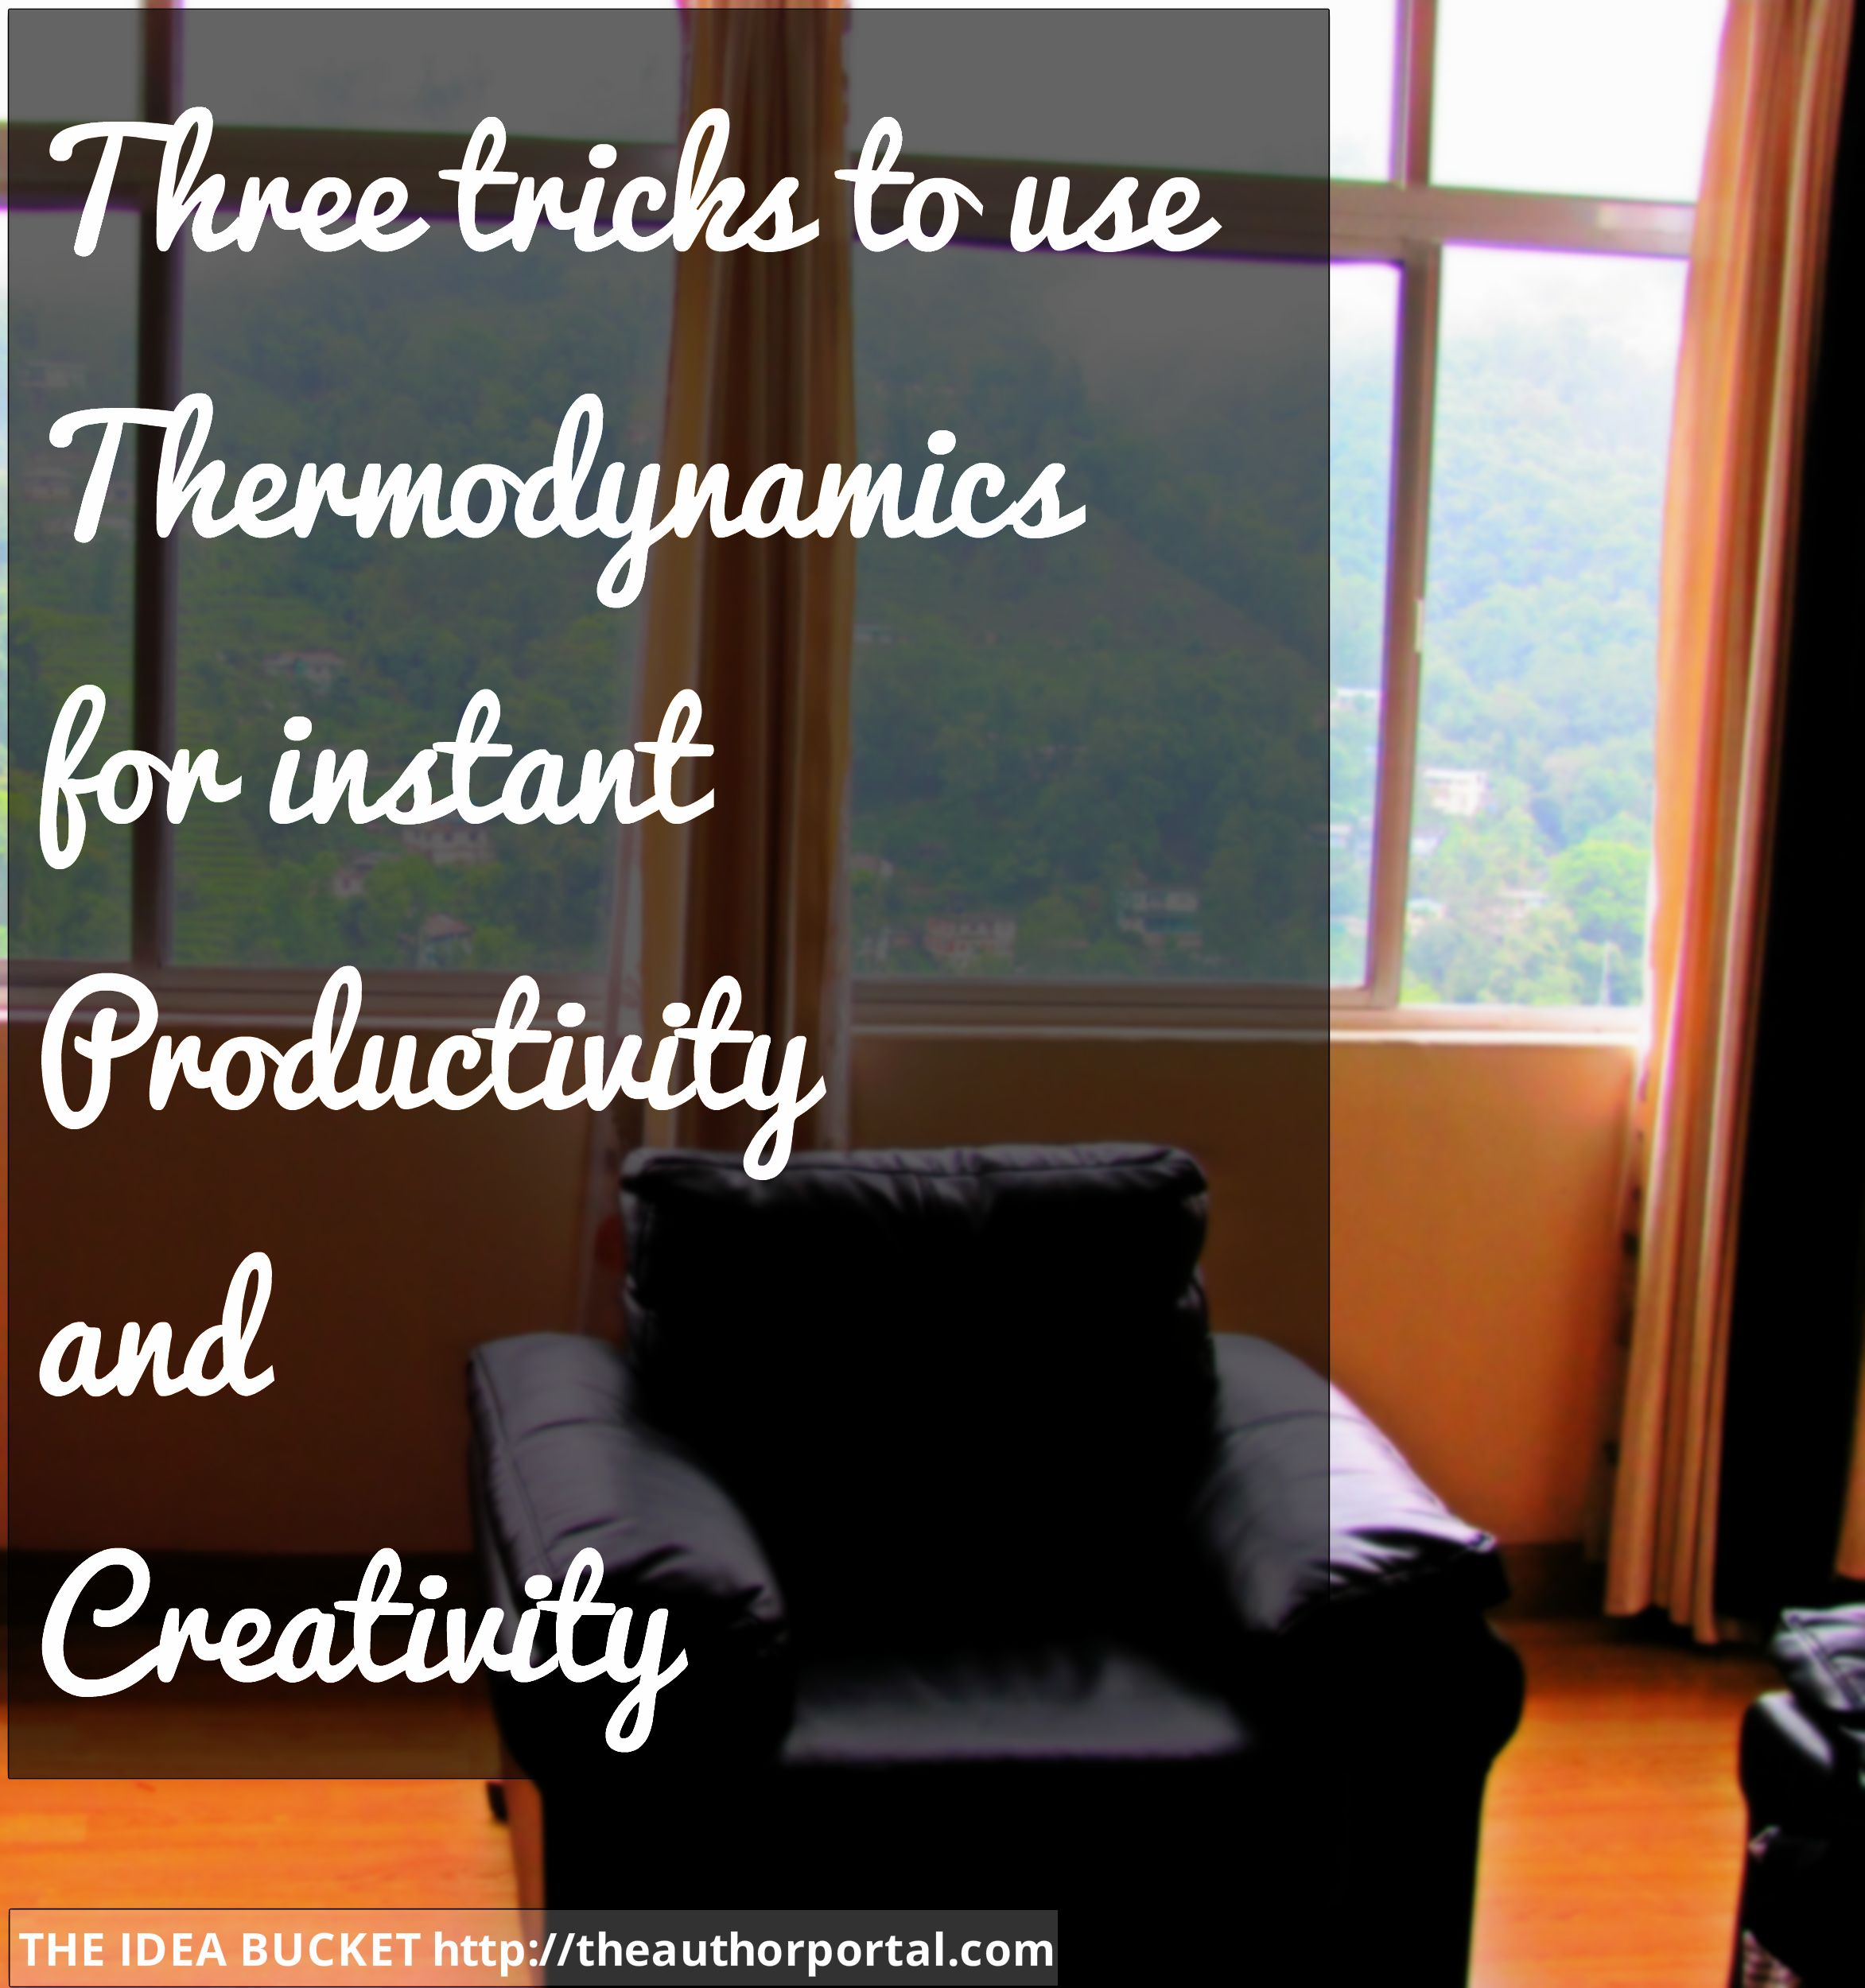 Thermodynamics-productivity-creativity-by-idea-bucket